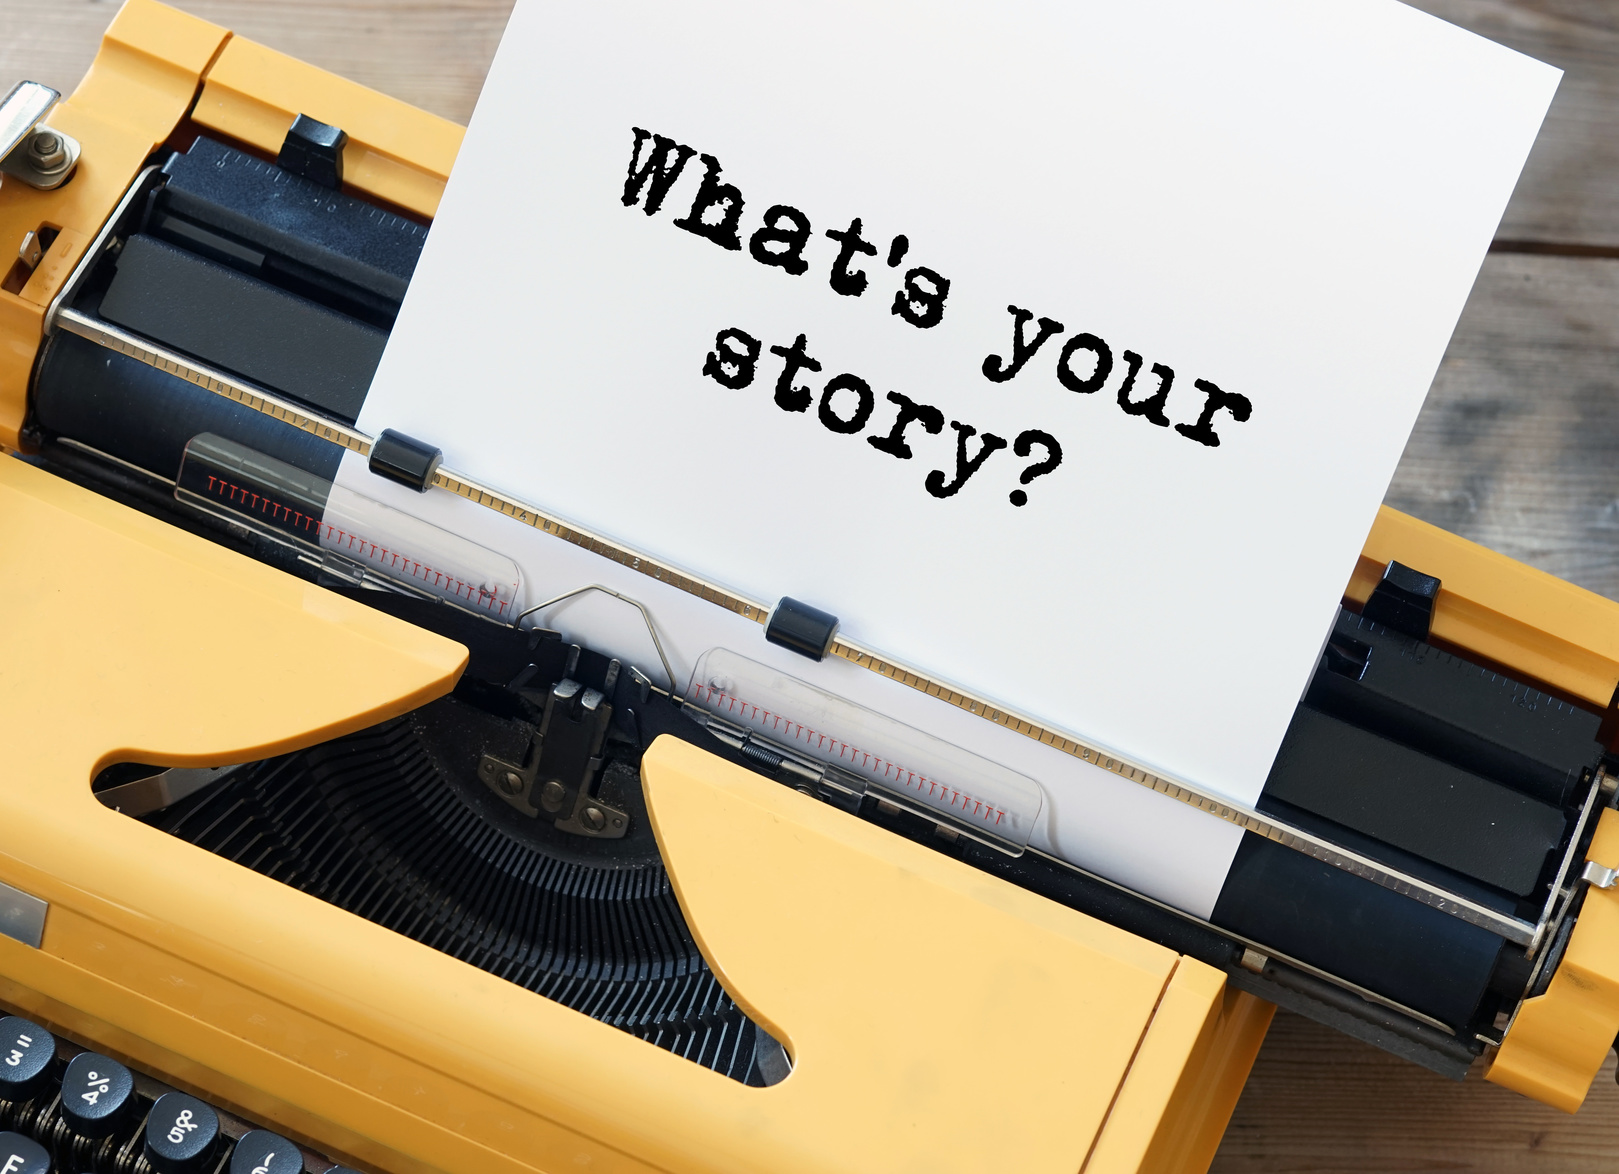 Rheuma: What's your story?